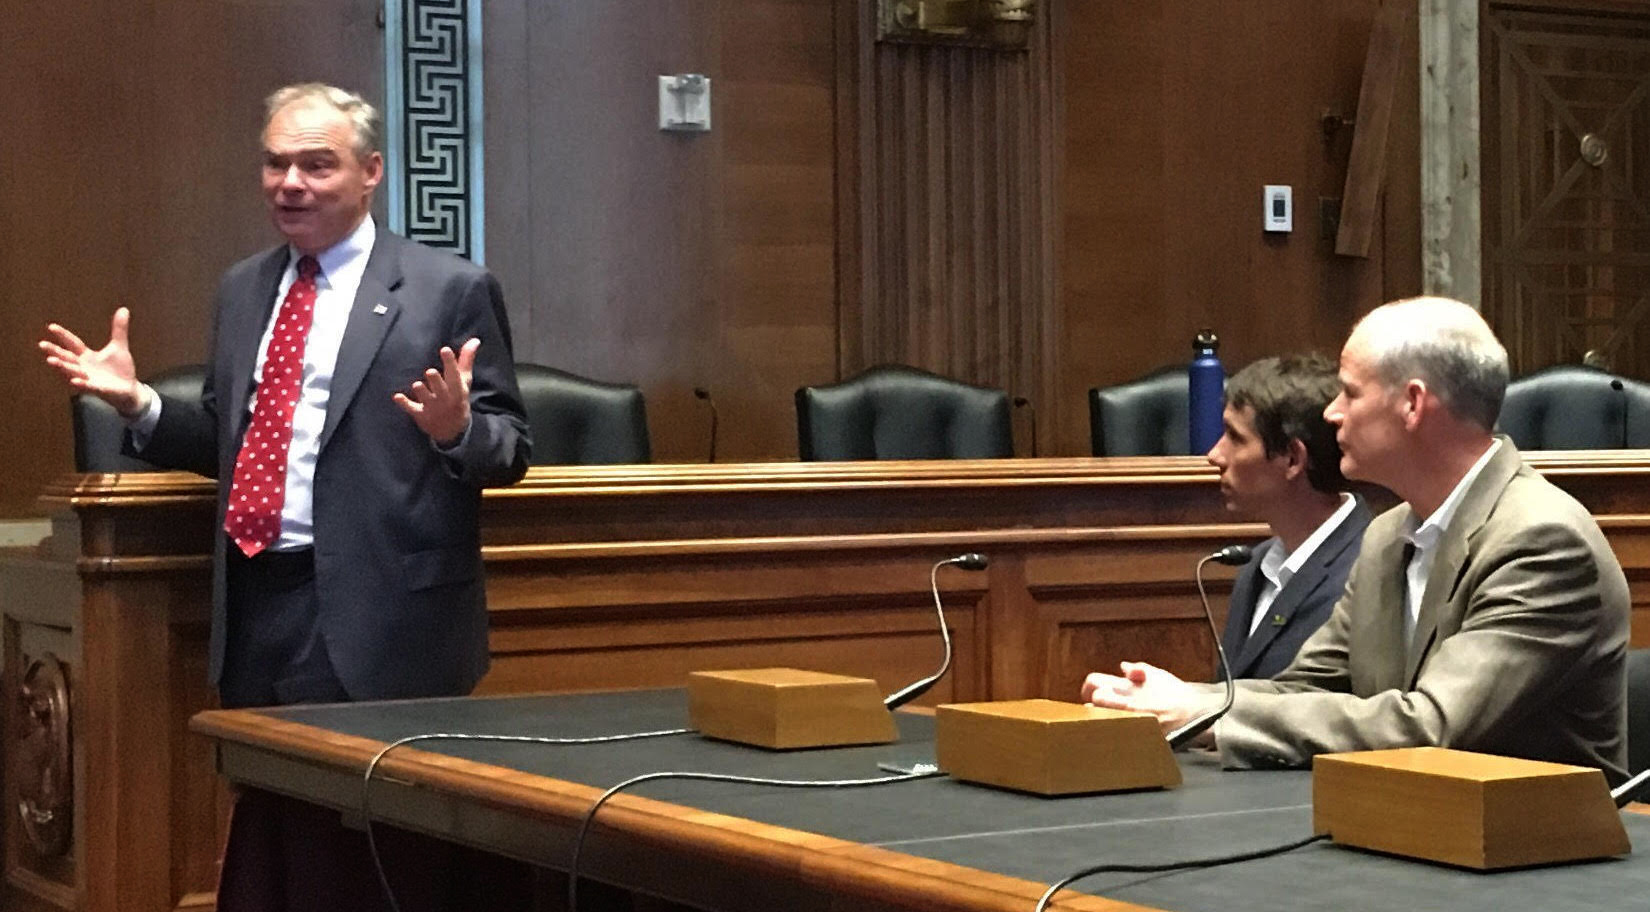 Senator Tim Kaine (D-Virginia) makes an impromptu speech at a Congressional briefing at the end of the day. Alex Honnold and Mike Gauthier, Yosemite National Park's Chief of Staff, look on. [Photo] Derek Franz